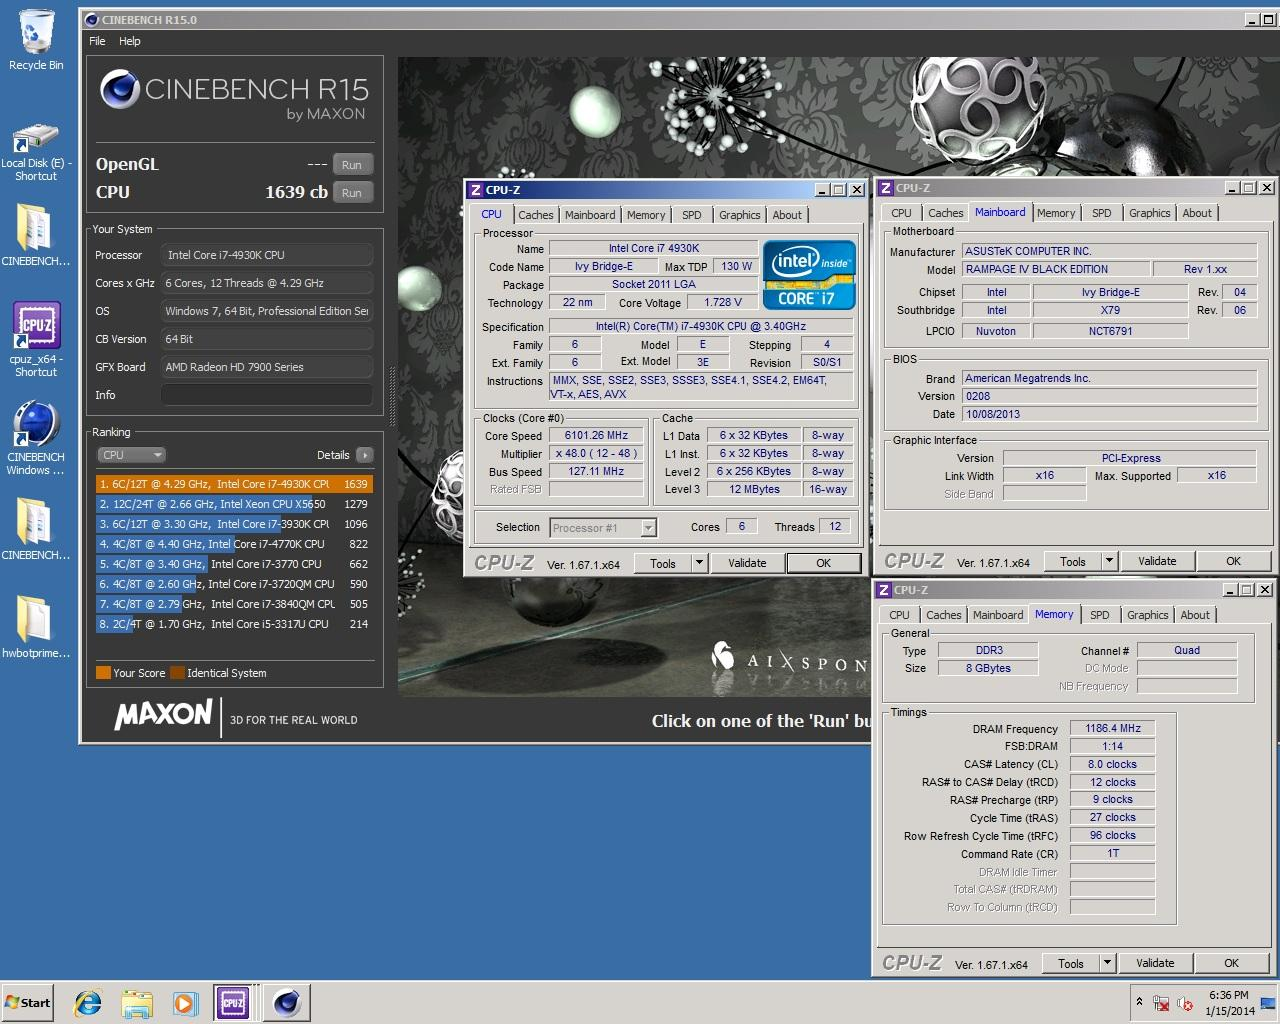 NABE From Japan Sets New Record for 6xCPU in Cinebench R15